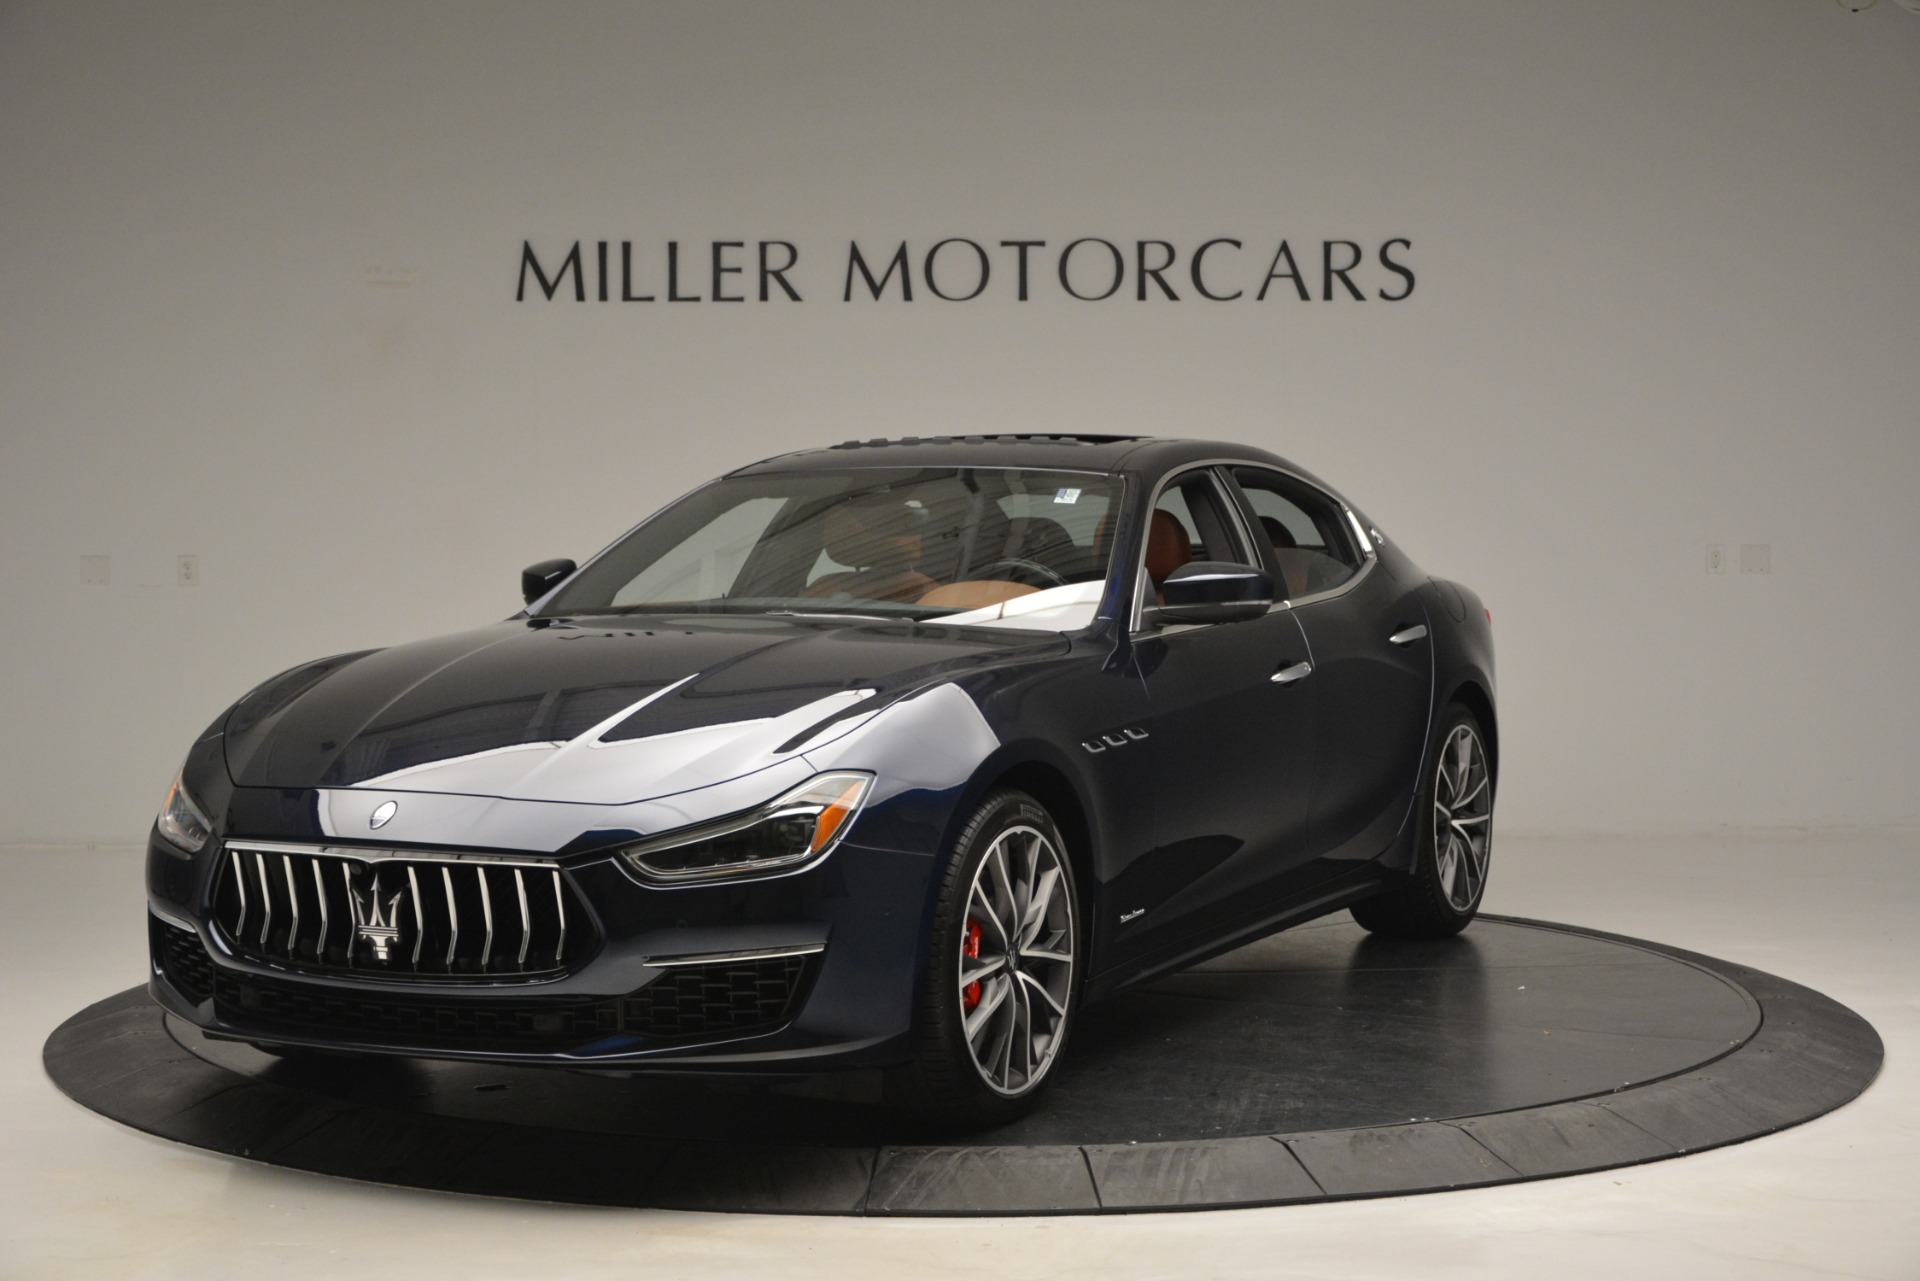 New 2019 Maserati Ghibli S Q4 GranLusso for sale Sold at Bentley Greenwich in Greenwich CT 06830 1